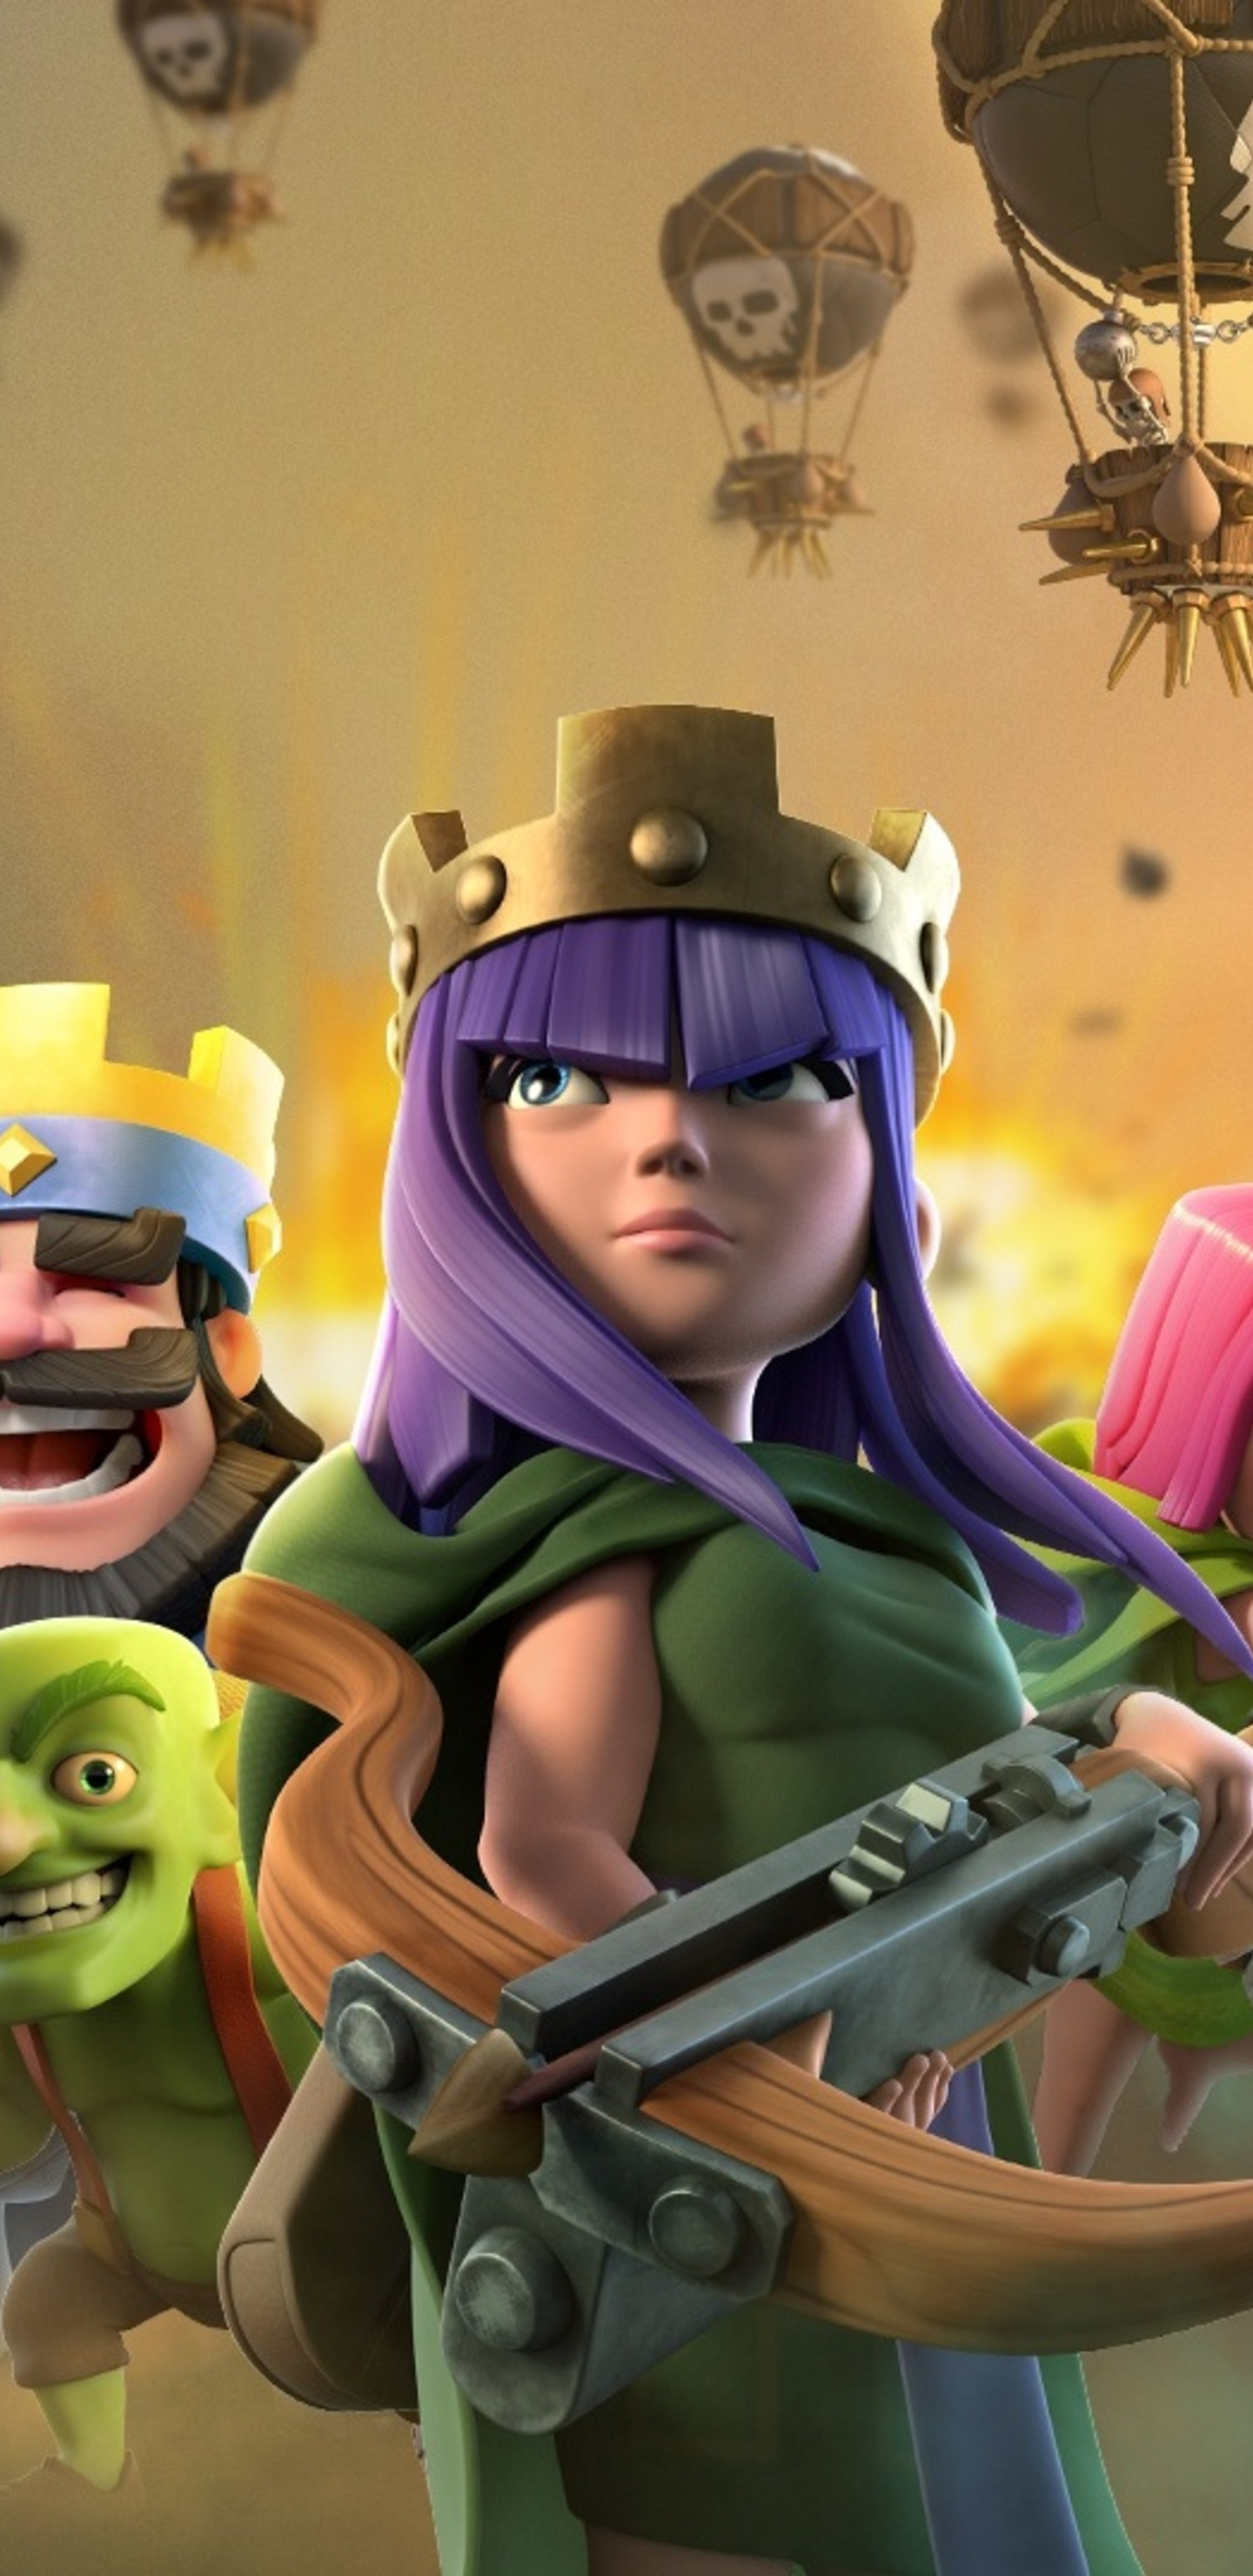 1440x2960 clash of clans clash royale supercell games samsung galaxy note 9 8 s9 s8 s8 qhd hd - Clash royale 2560x1440 ...